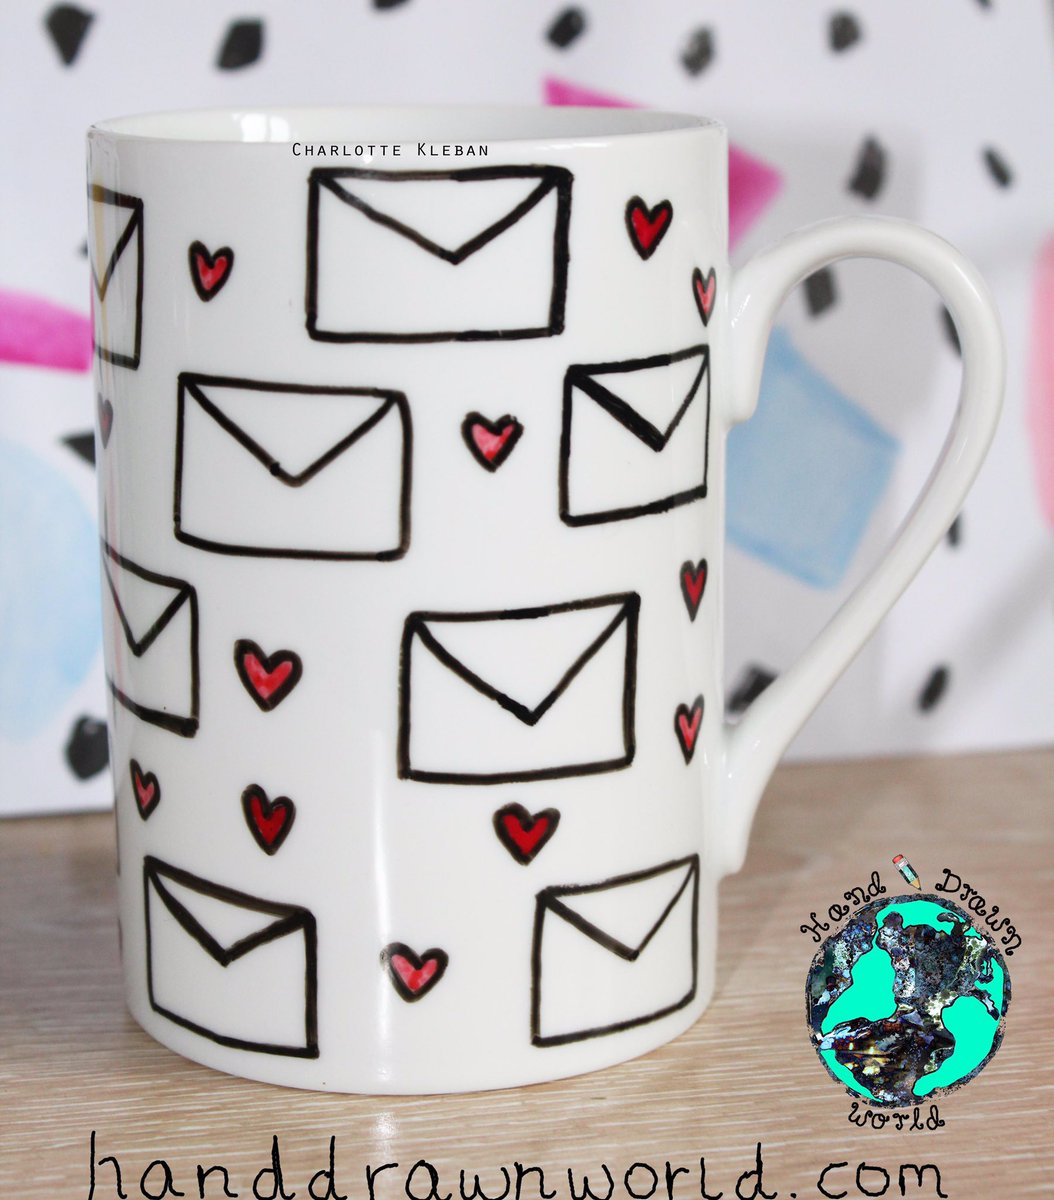 🎉 #Competition time 🎉   Simply #RTtowin this hand drawn porcelain #loveletters #mug + tag a friend in the comments ❤️  ⭐️ Must be following to enter ⭐️ One RT + comment = 1 entry ⭐️ Winner announced 12/7/19 at 6pm GMT  Best of luck + thankyou for the support 🙏🏻✏️🌍 #giveaway